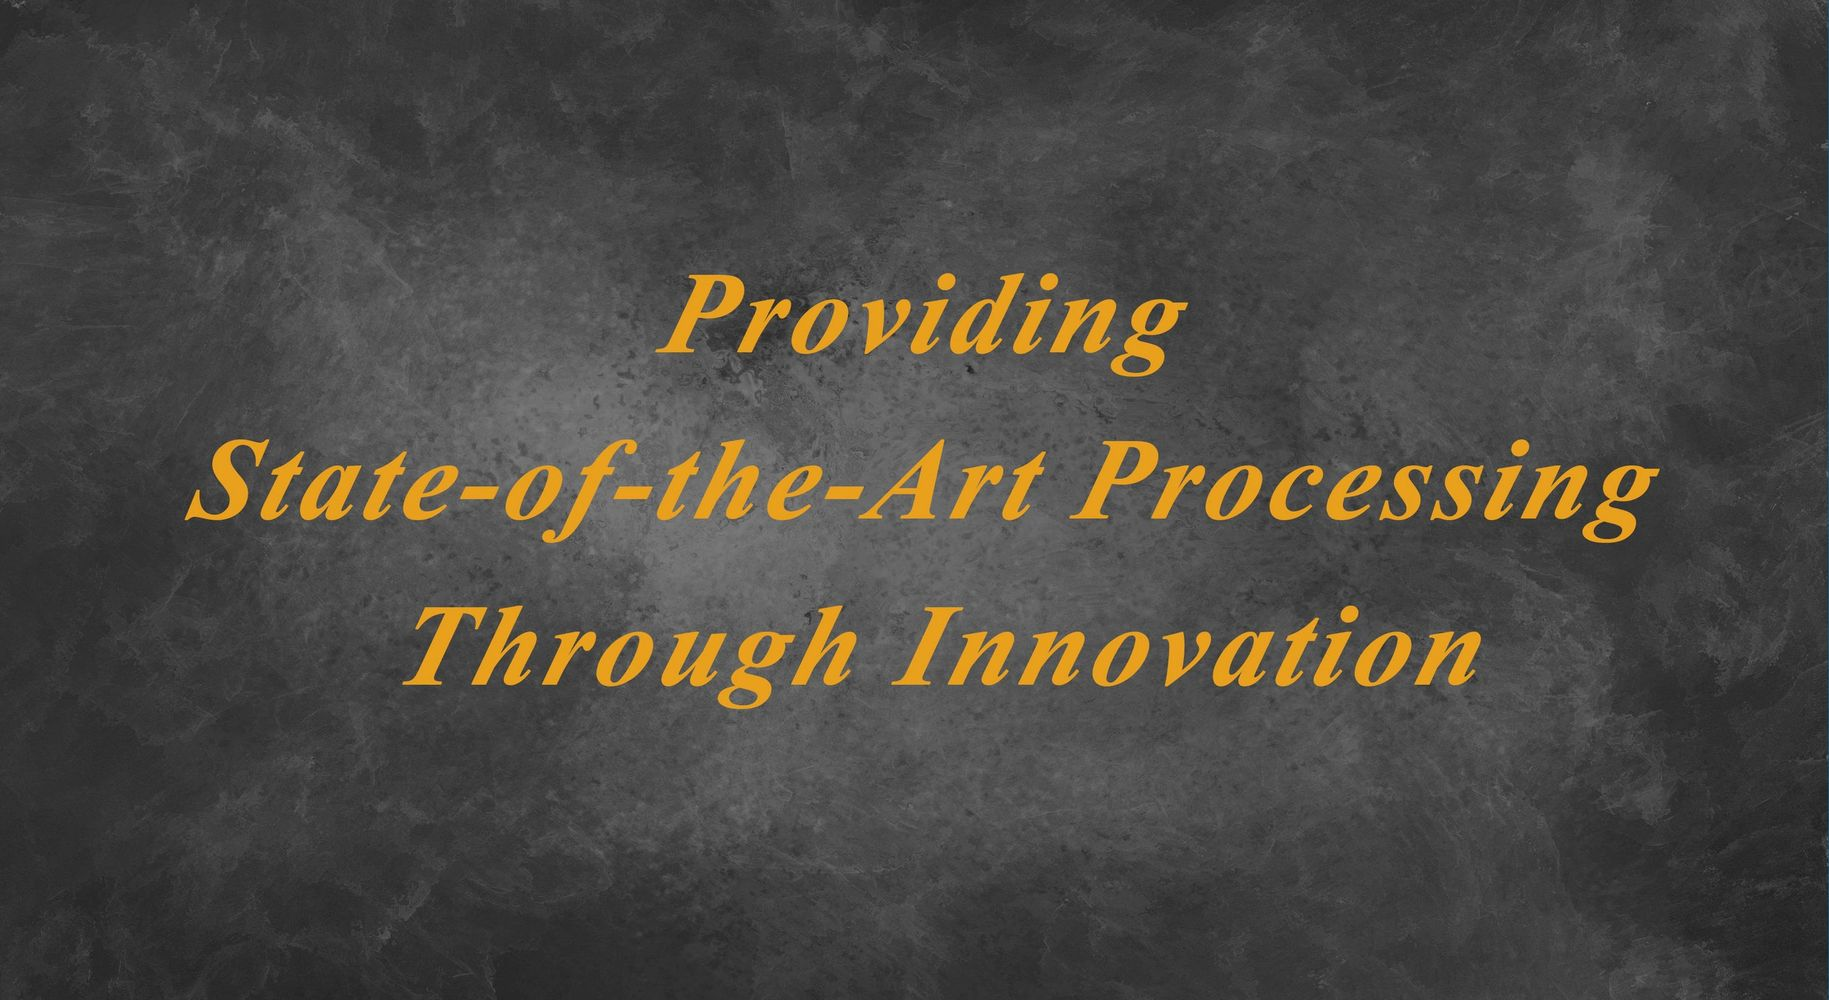 Providing State-of-the-Art Processing Through Innovation